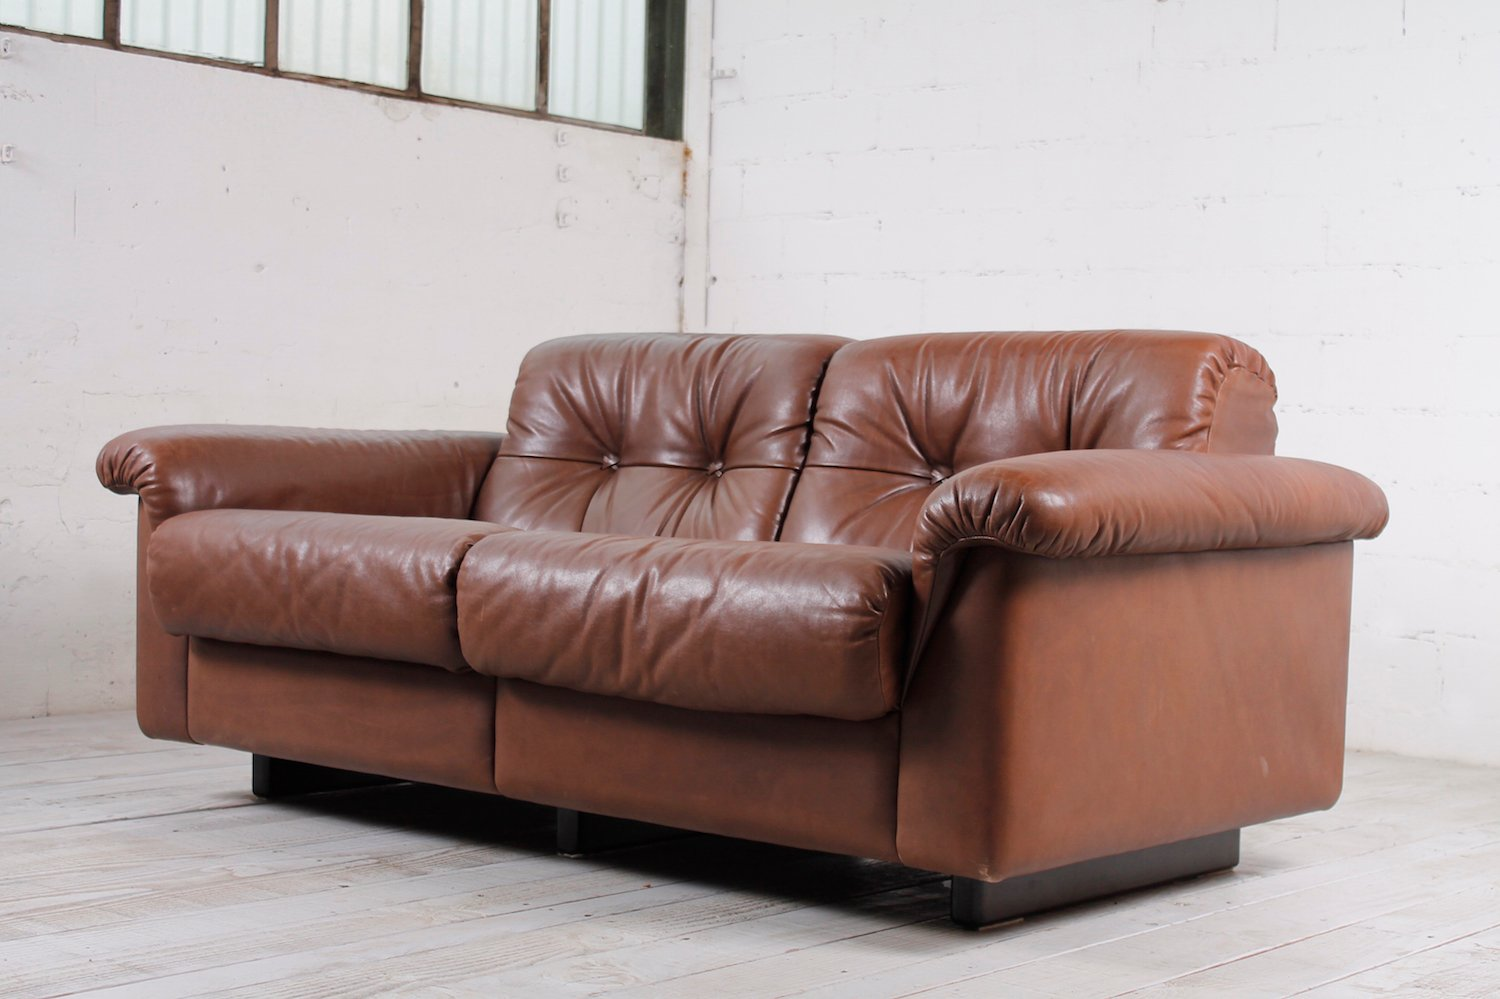 Vintage 2 Seater Leather Sofa, 1960s